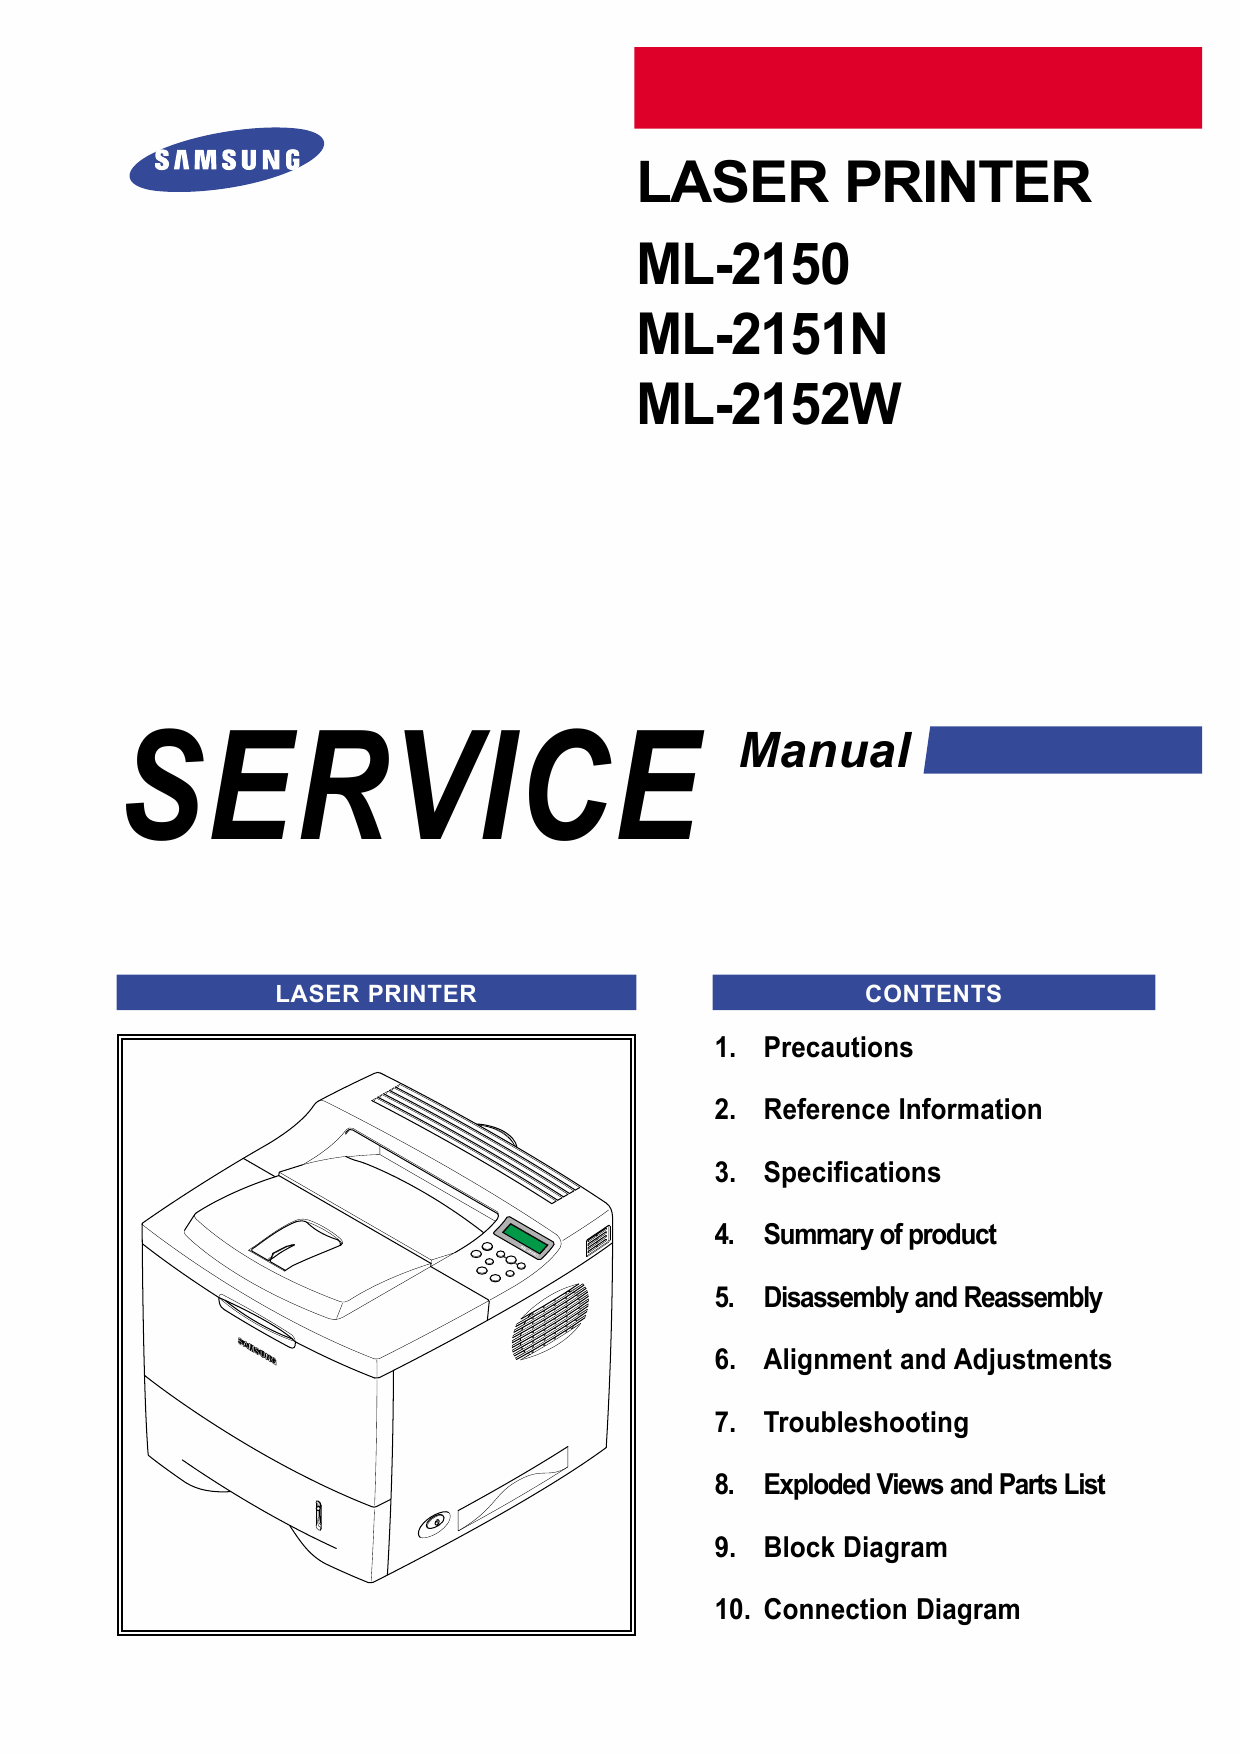 Samsung Laser-Printer ML-2150 2151N 2152W Parts and Service Manual-1